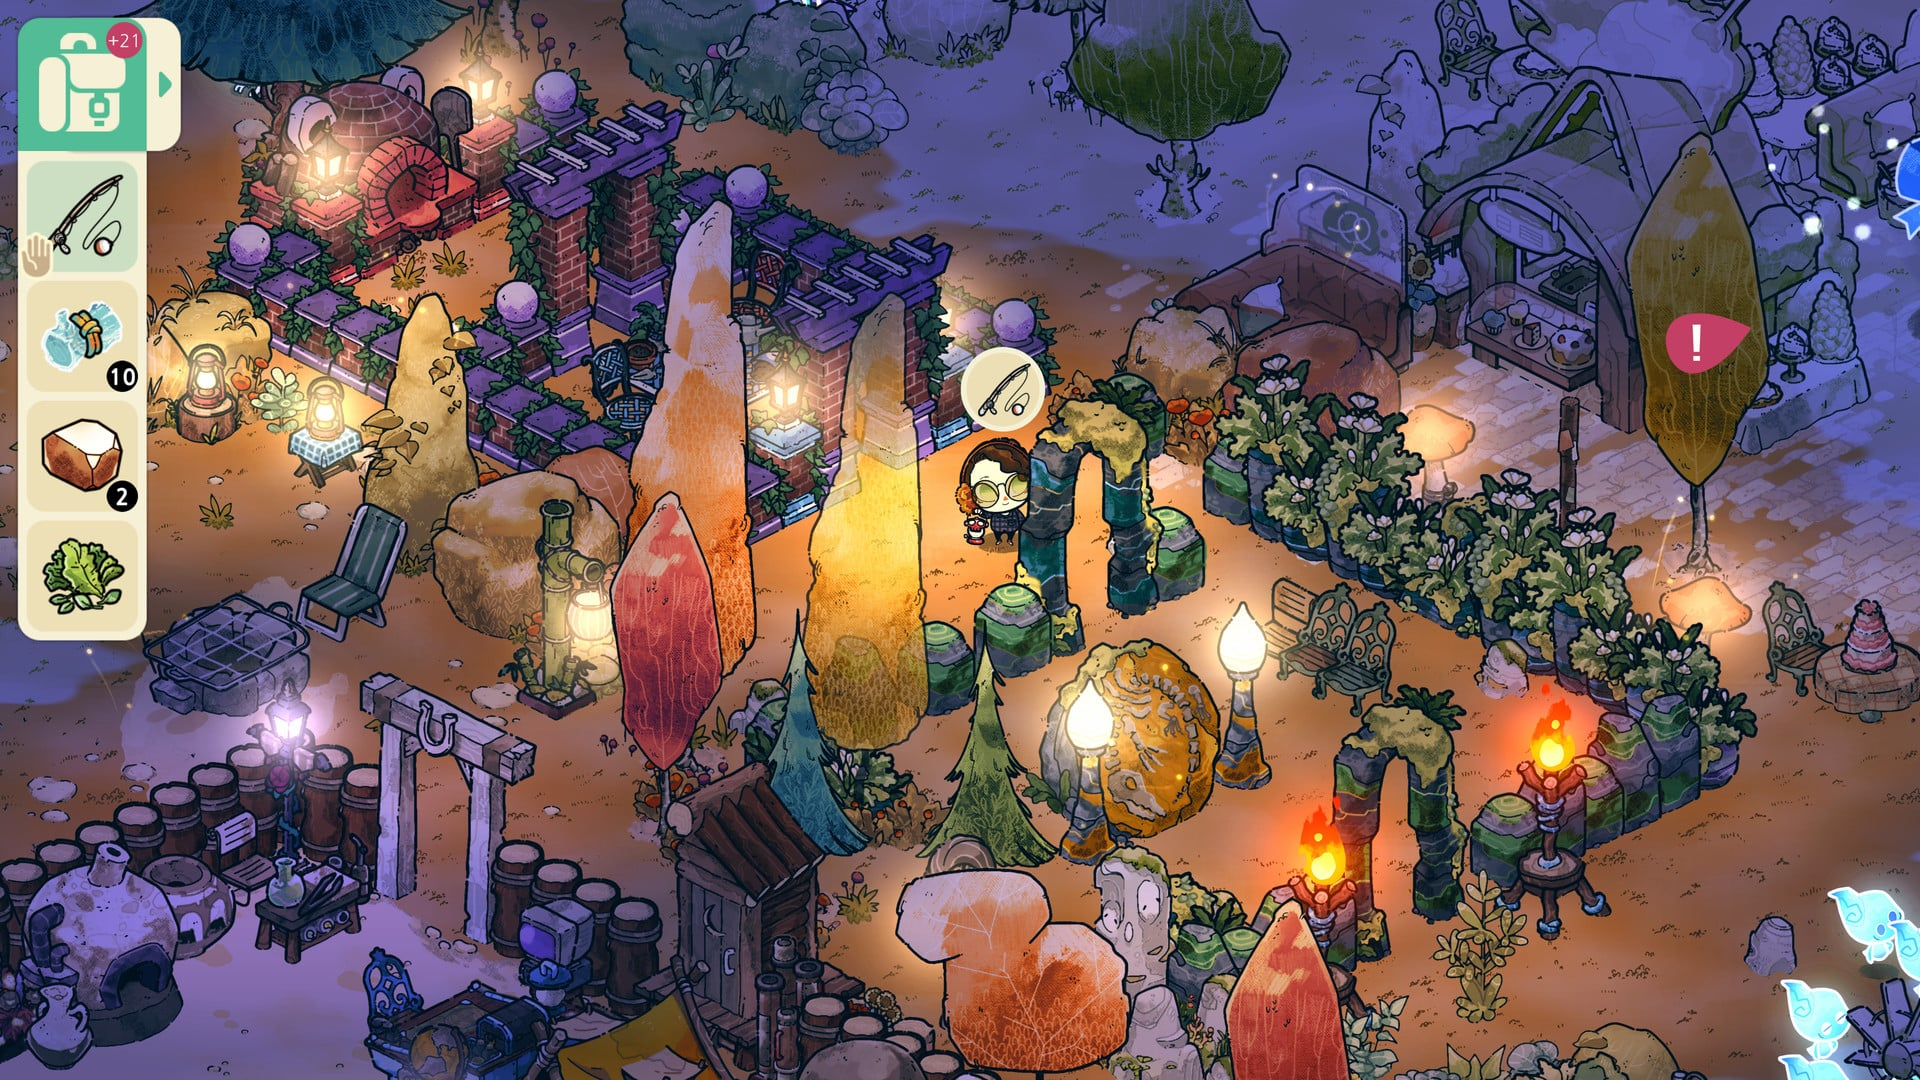 Cozy Grove Spry Fox beautiful serene life sim to play in daily doses, unlike Stardew Valley